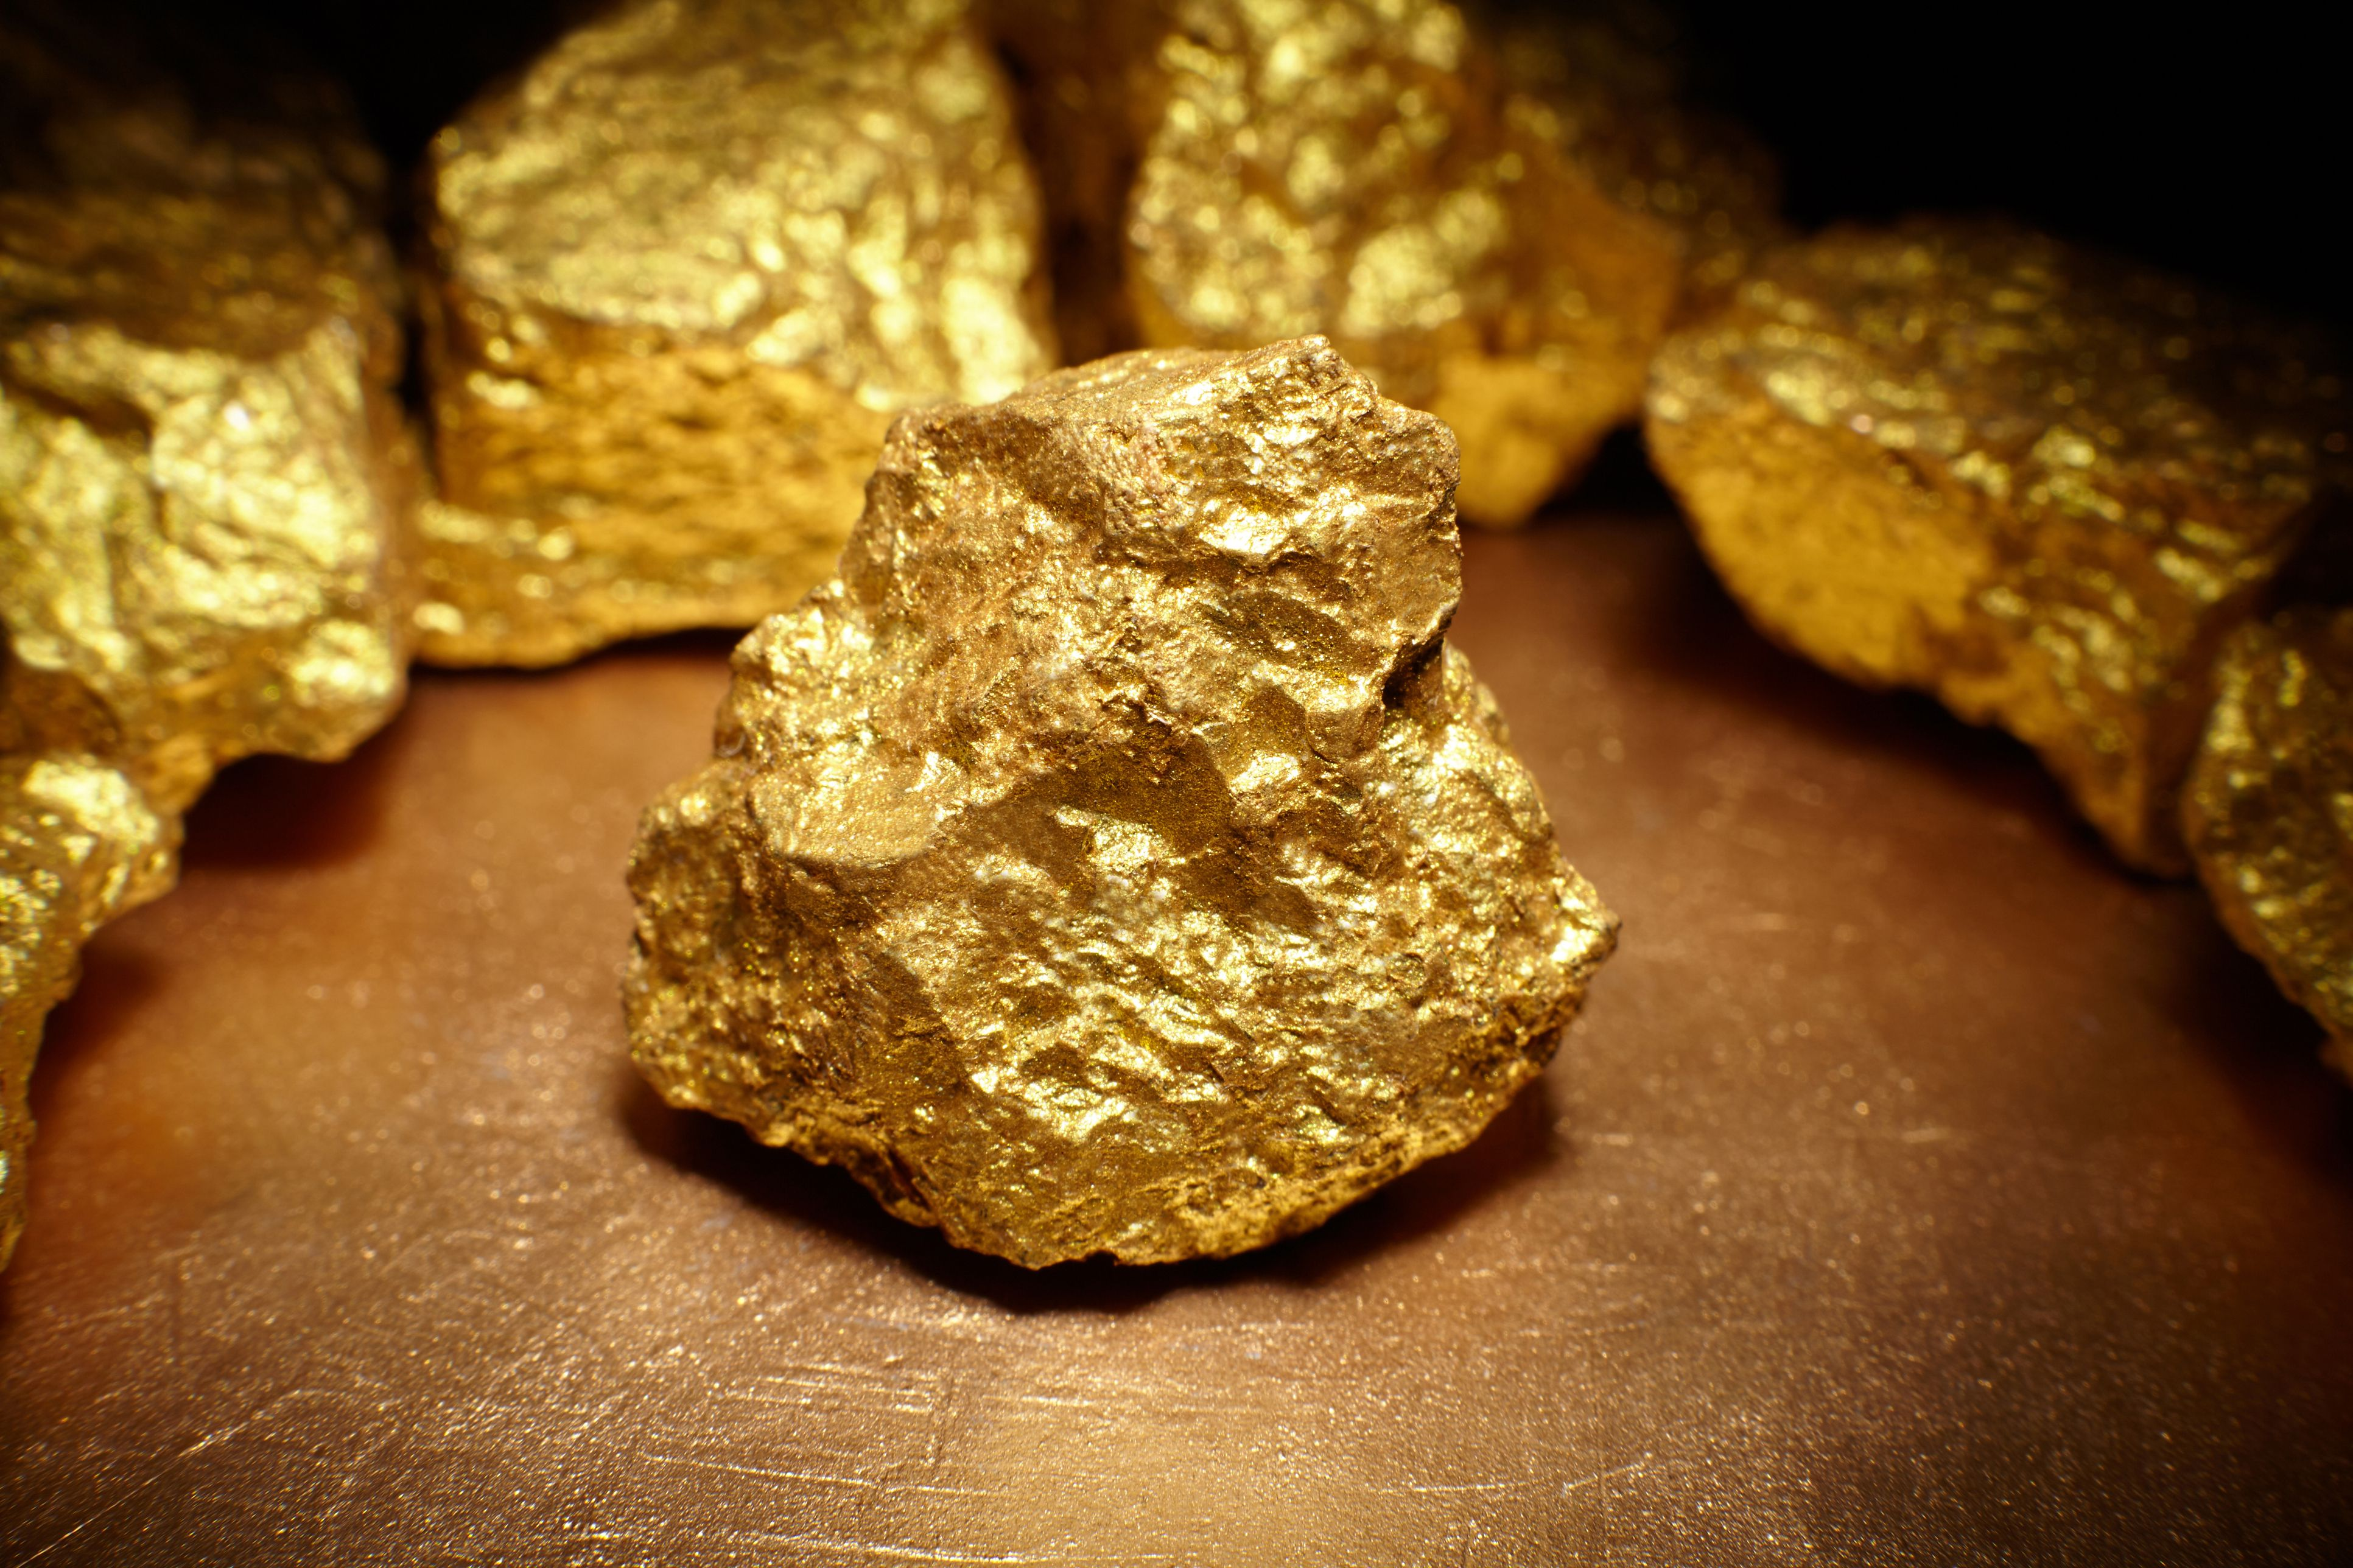 Chemical and Physical Properties of Gold - photo#39